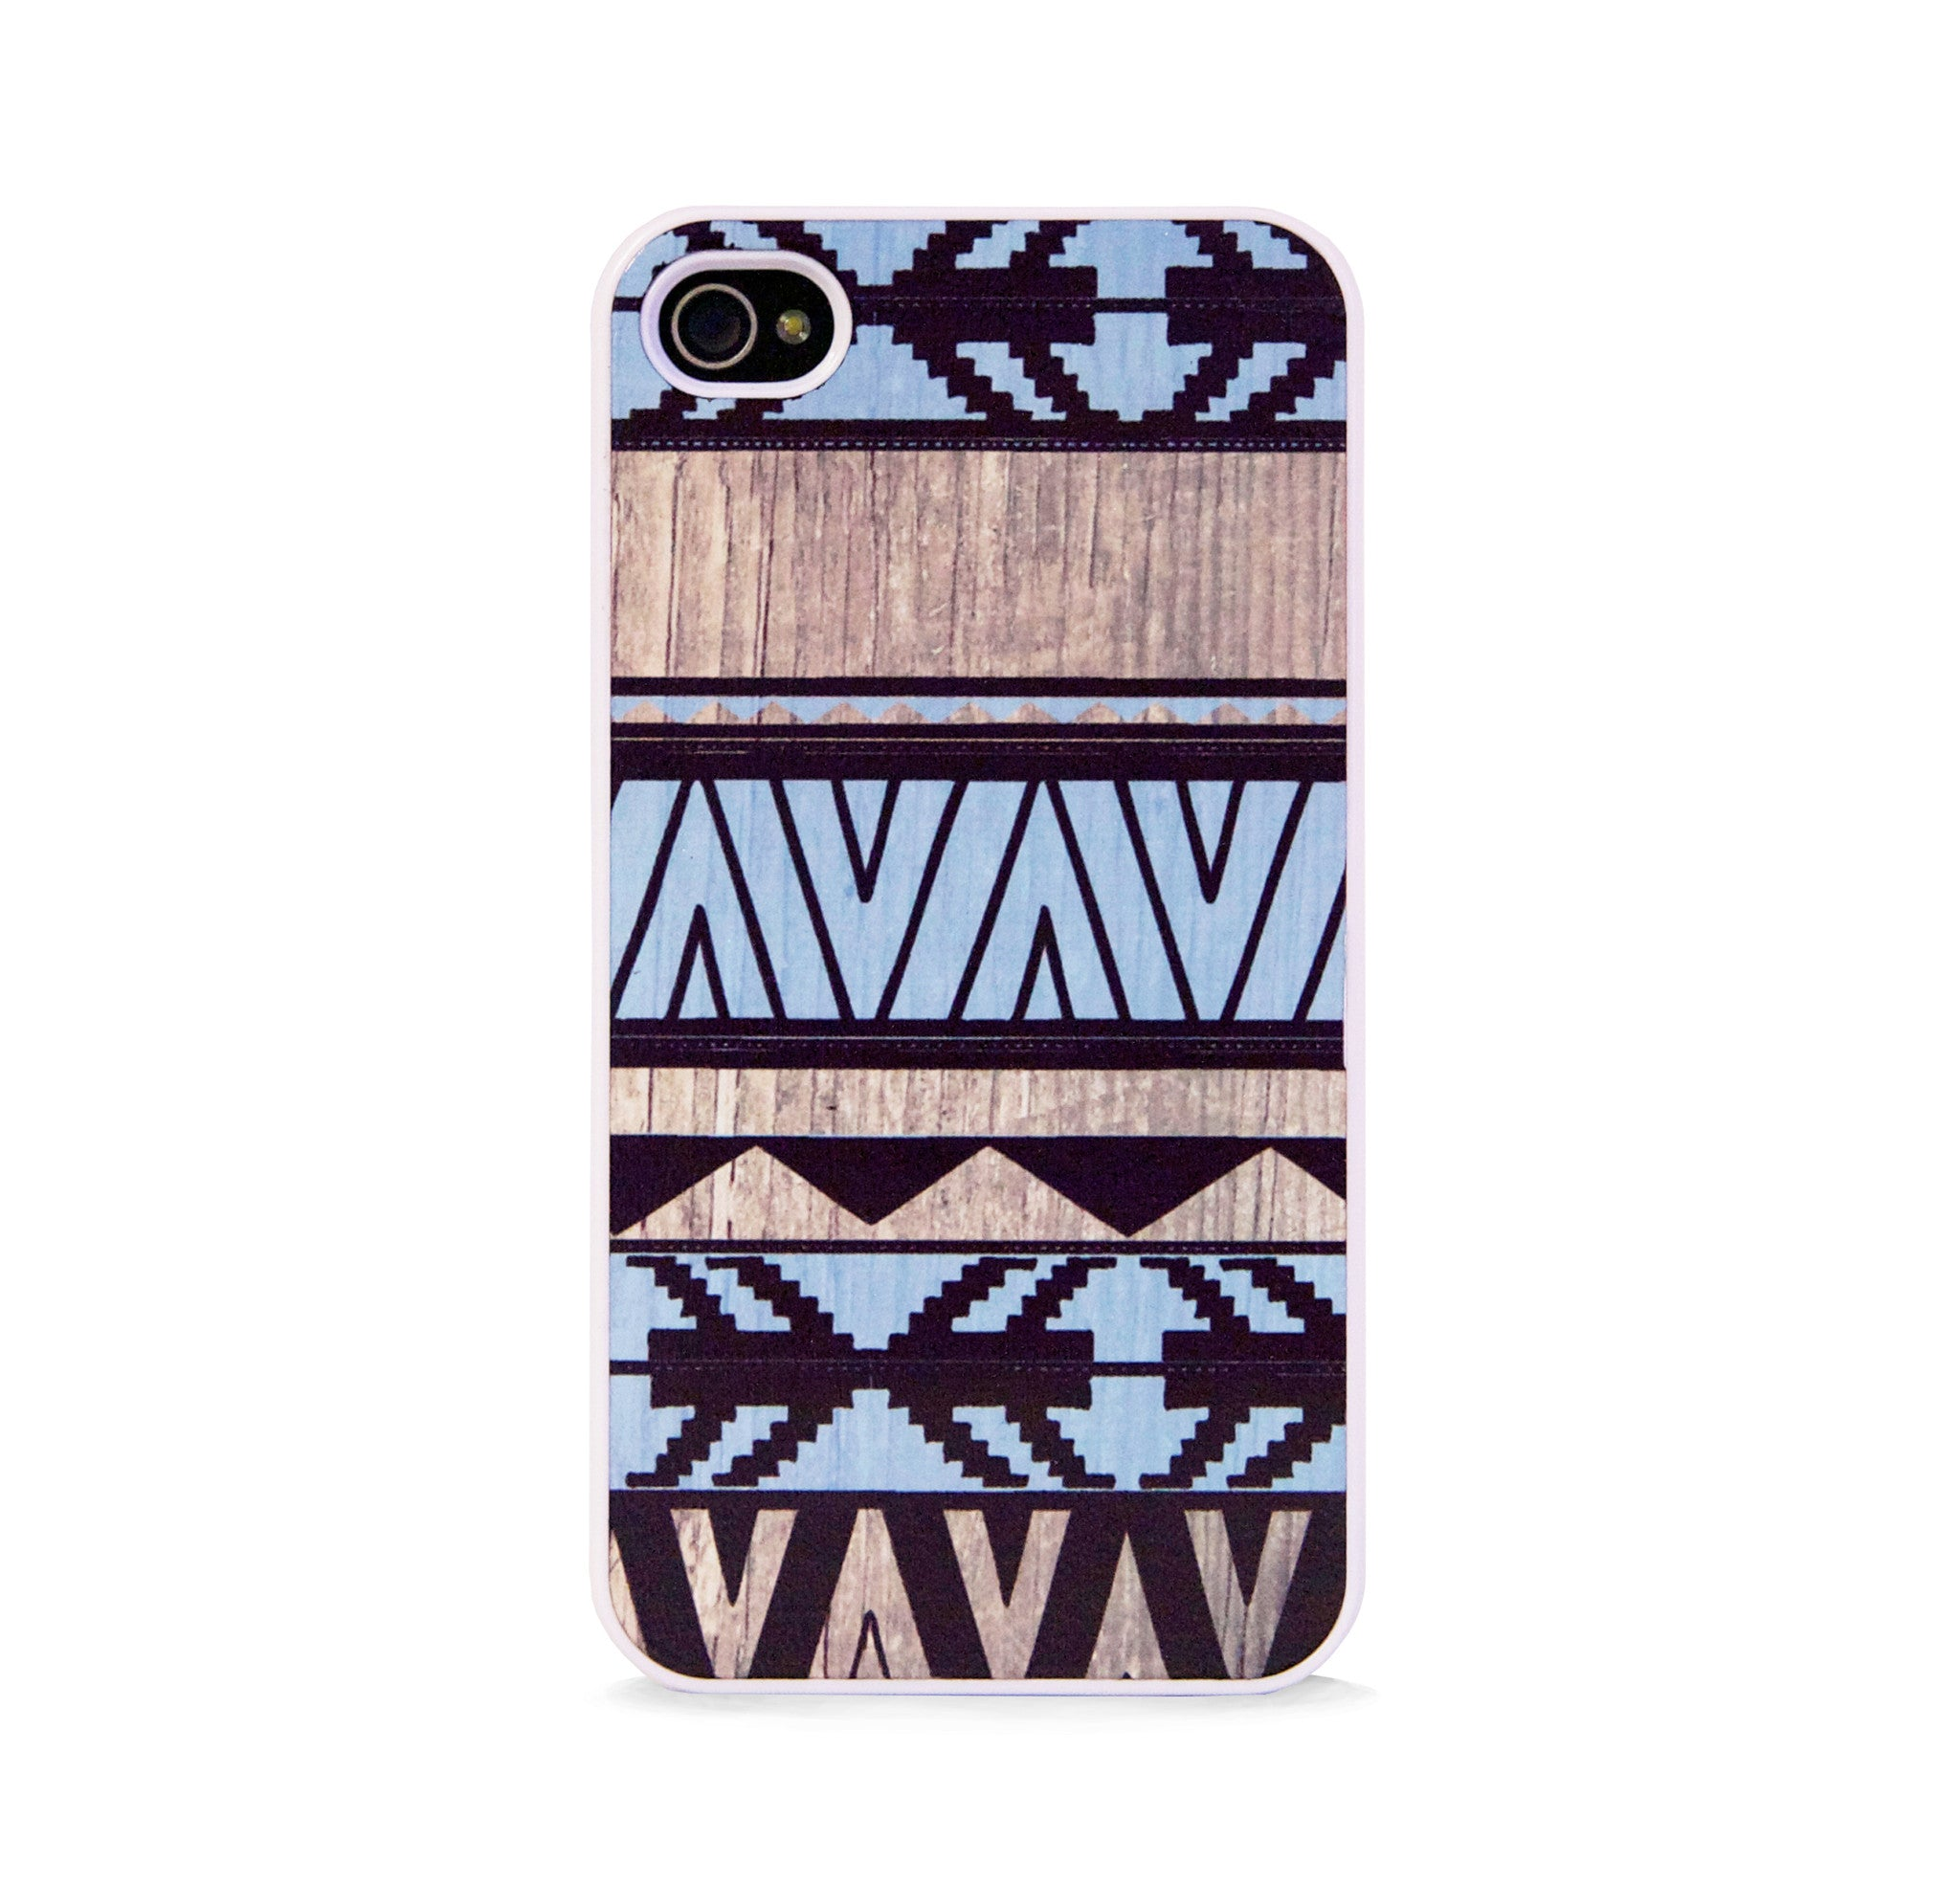 AZTEC GEO BLUE WOOD FOR IPHONE 4/4S